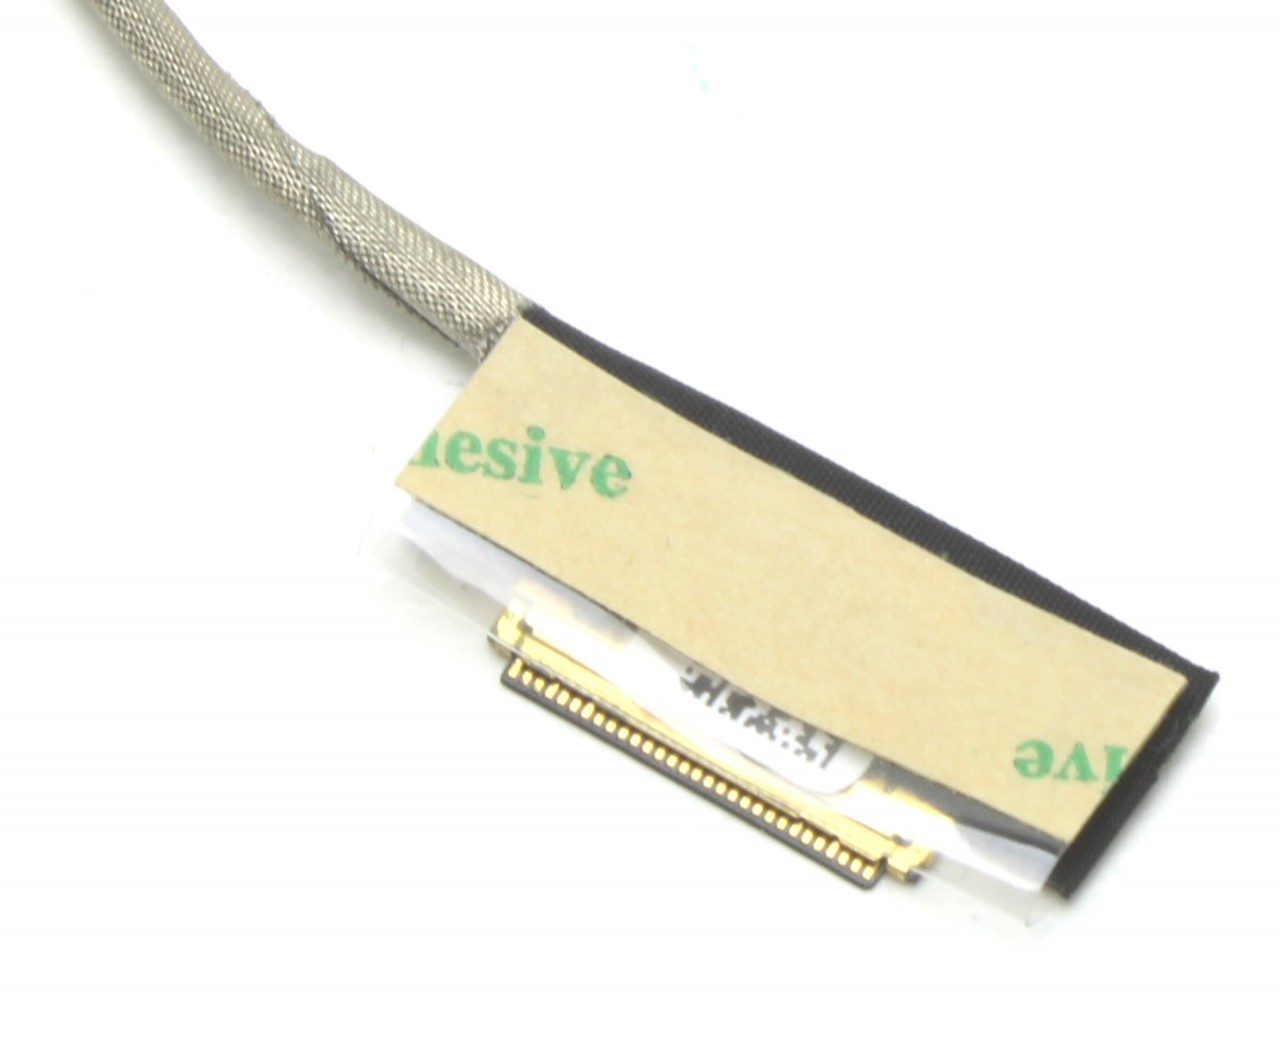 Cablu video LVDS Acer Aspire V3 572G cu touchscreen imagine powerlaptop.ro 2021